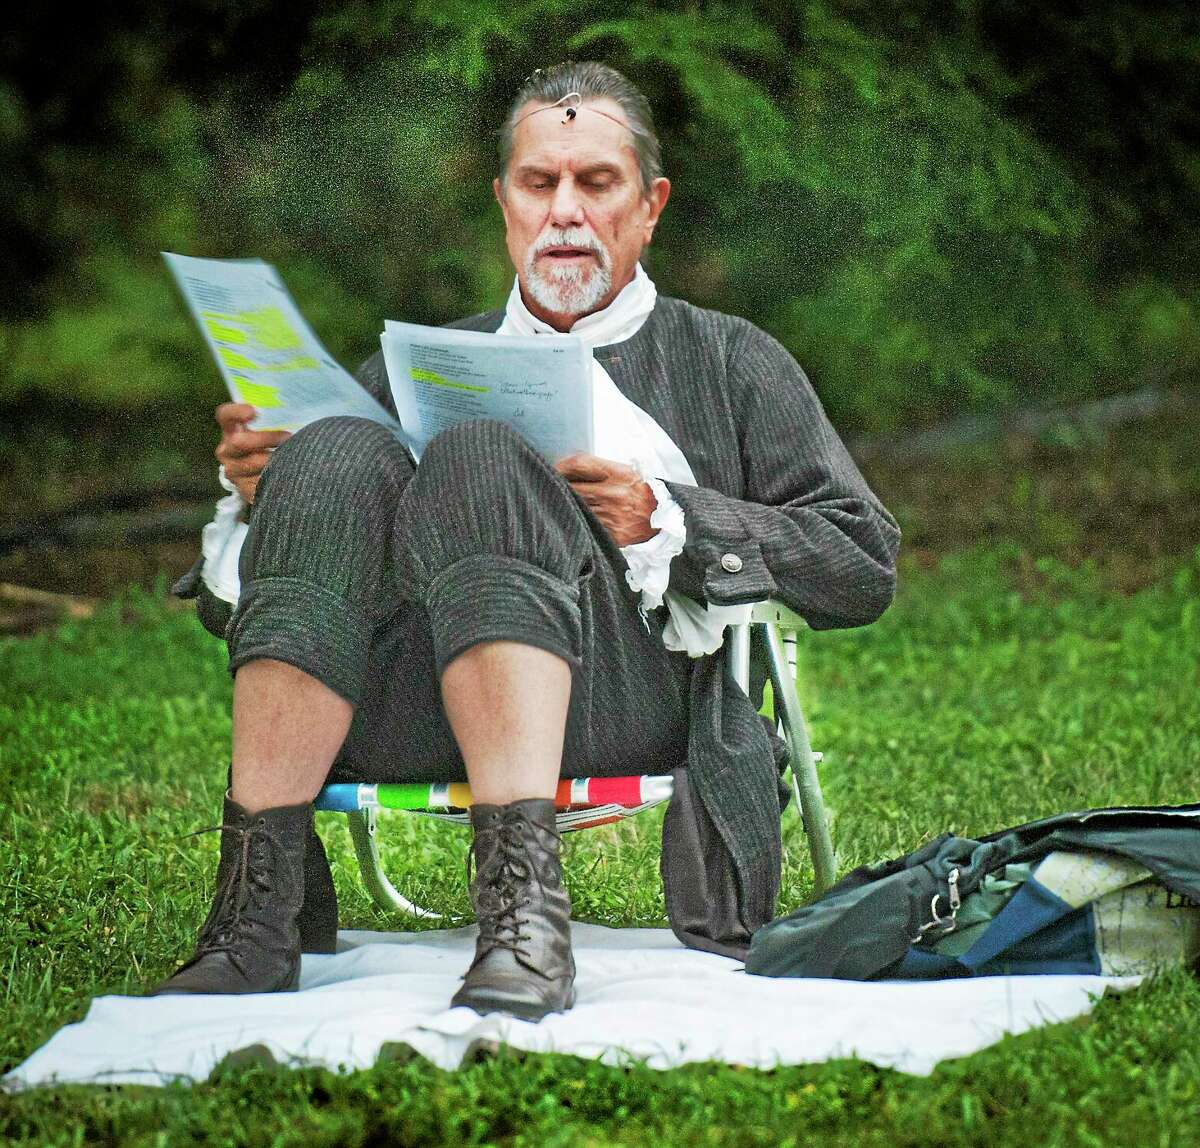 """Melanie Stengel — New Haven Register Actor Tracy Griswold goes over the script for """"Pericles"""" as he waits to go on stage in Edgerton Park Wednesday."""